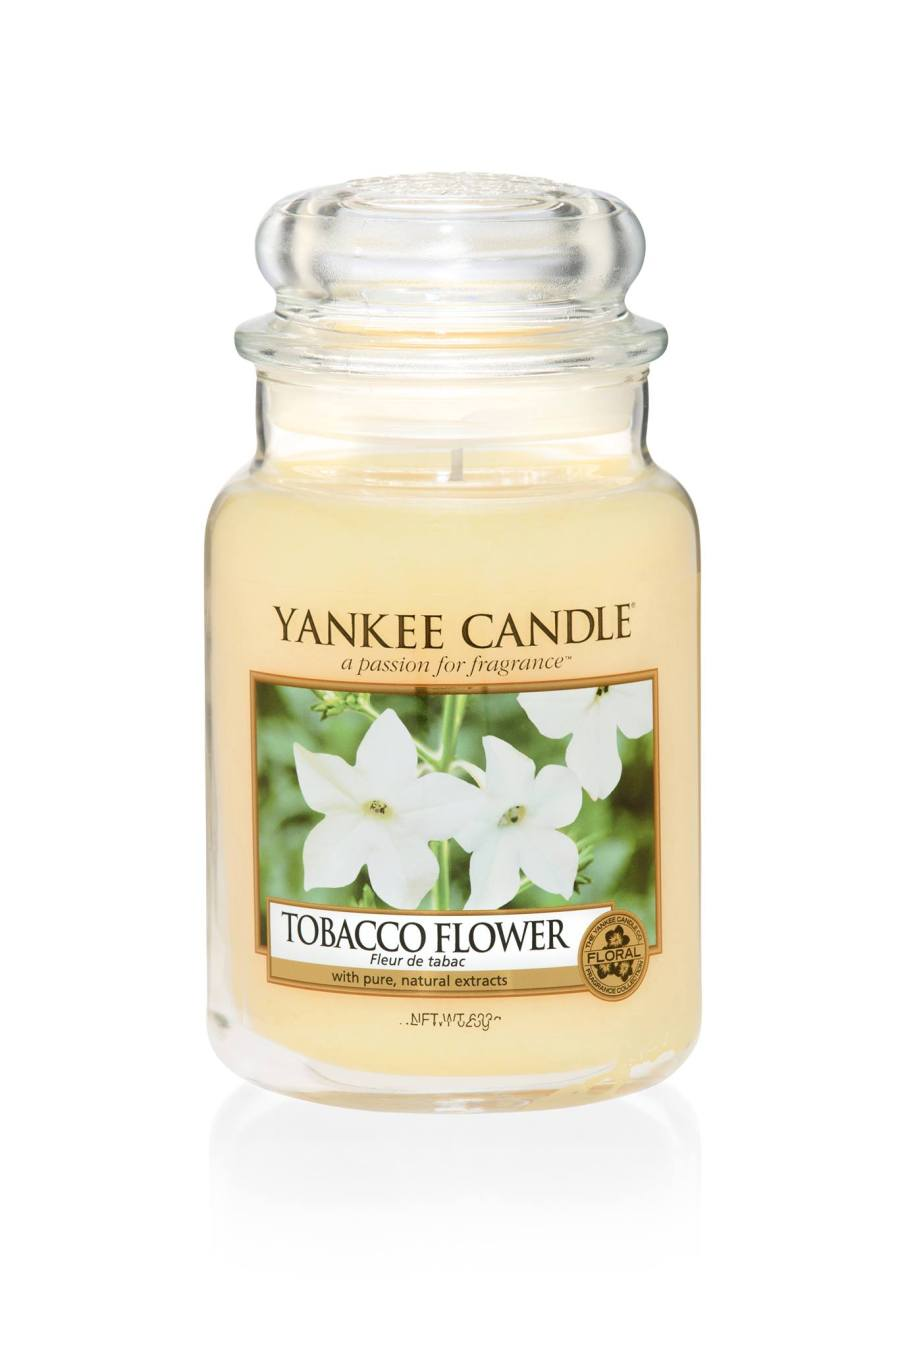 A tall glass jar full of some white coloured wax, with a label that has yankee candle written in white writing, tobacco flower written in black writing, and a picture of some white flowers on it, on a white background.